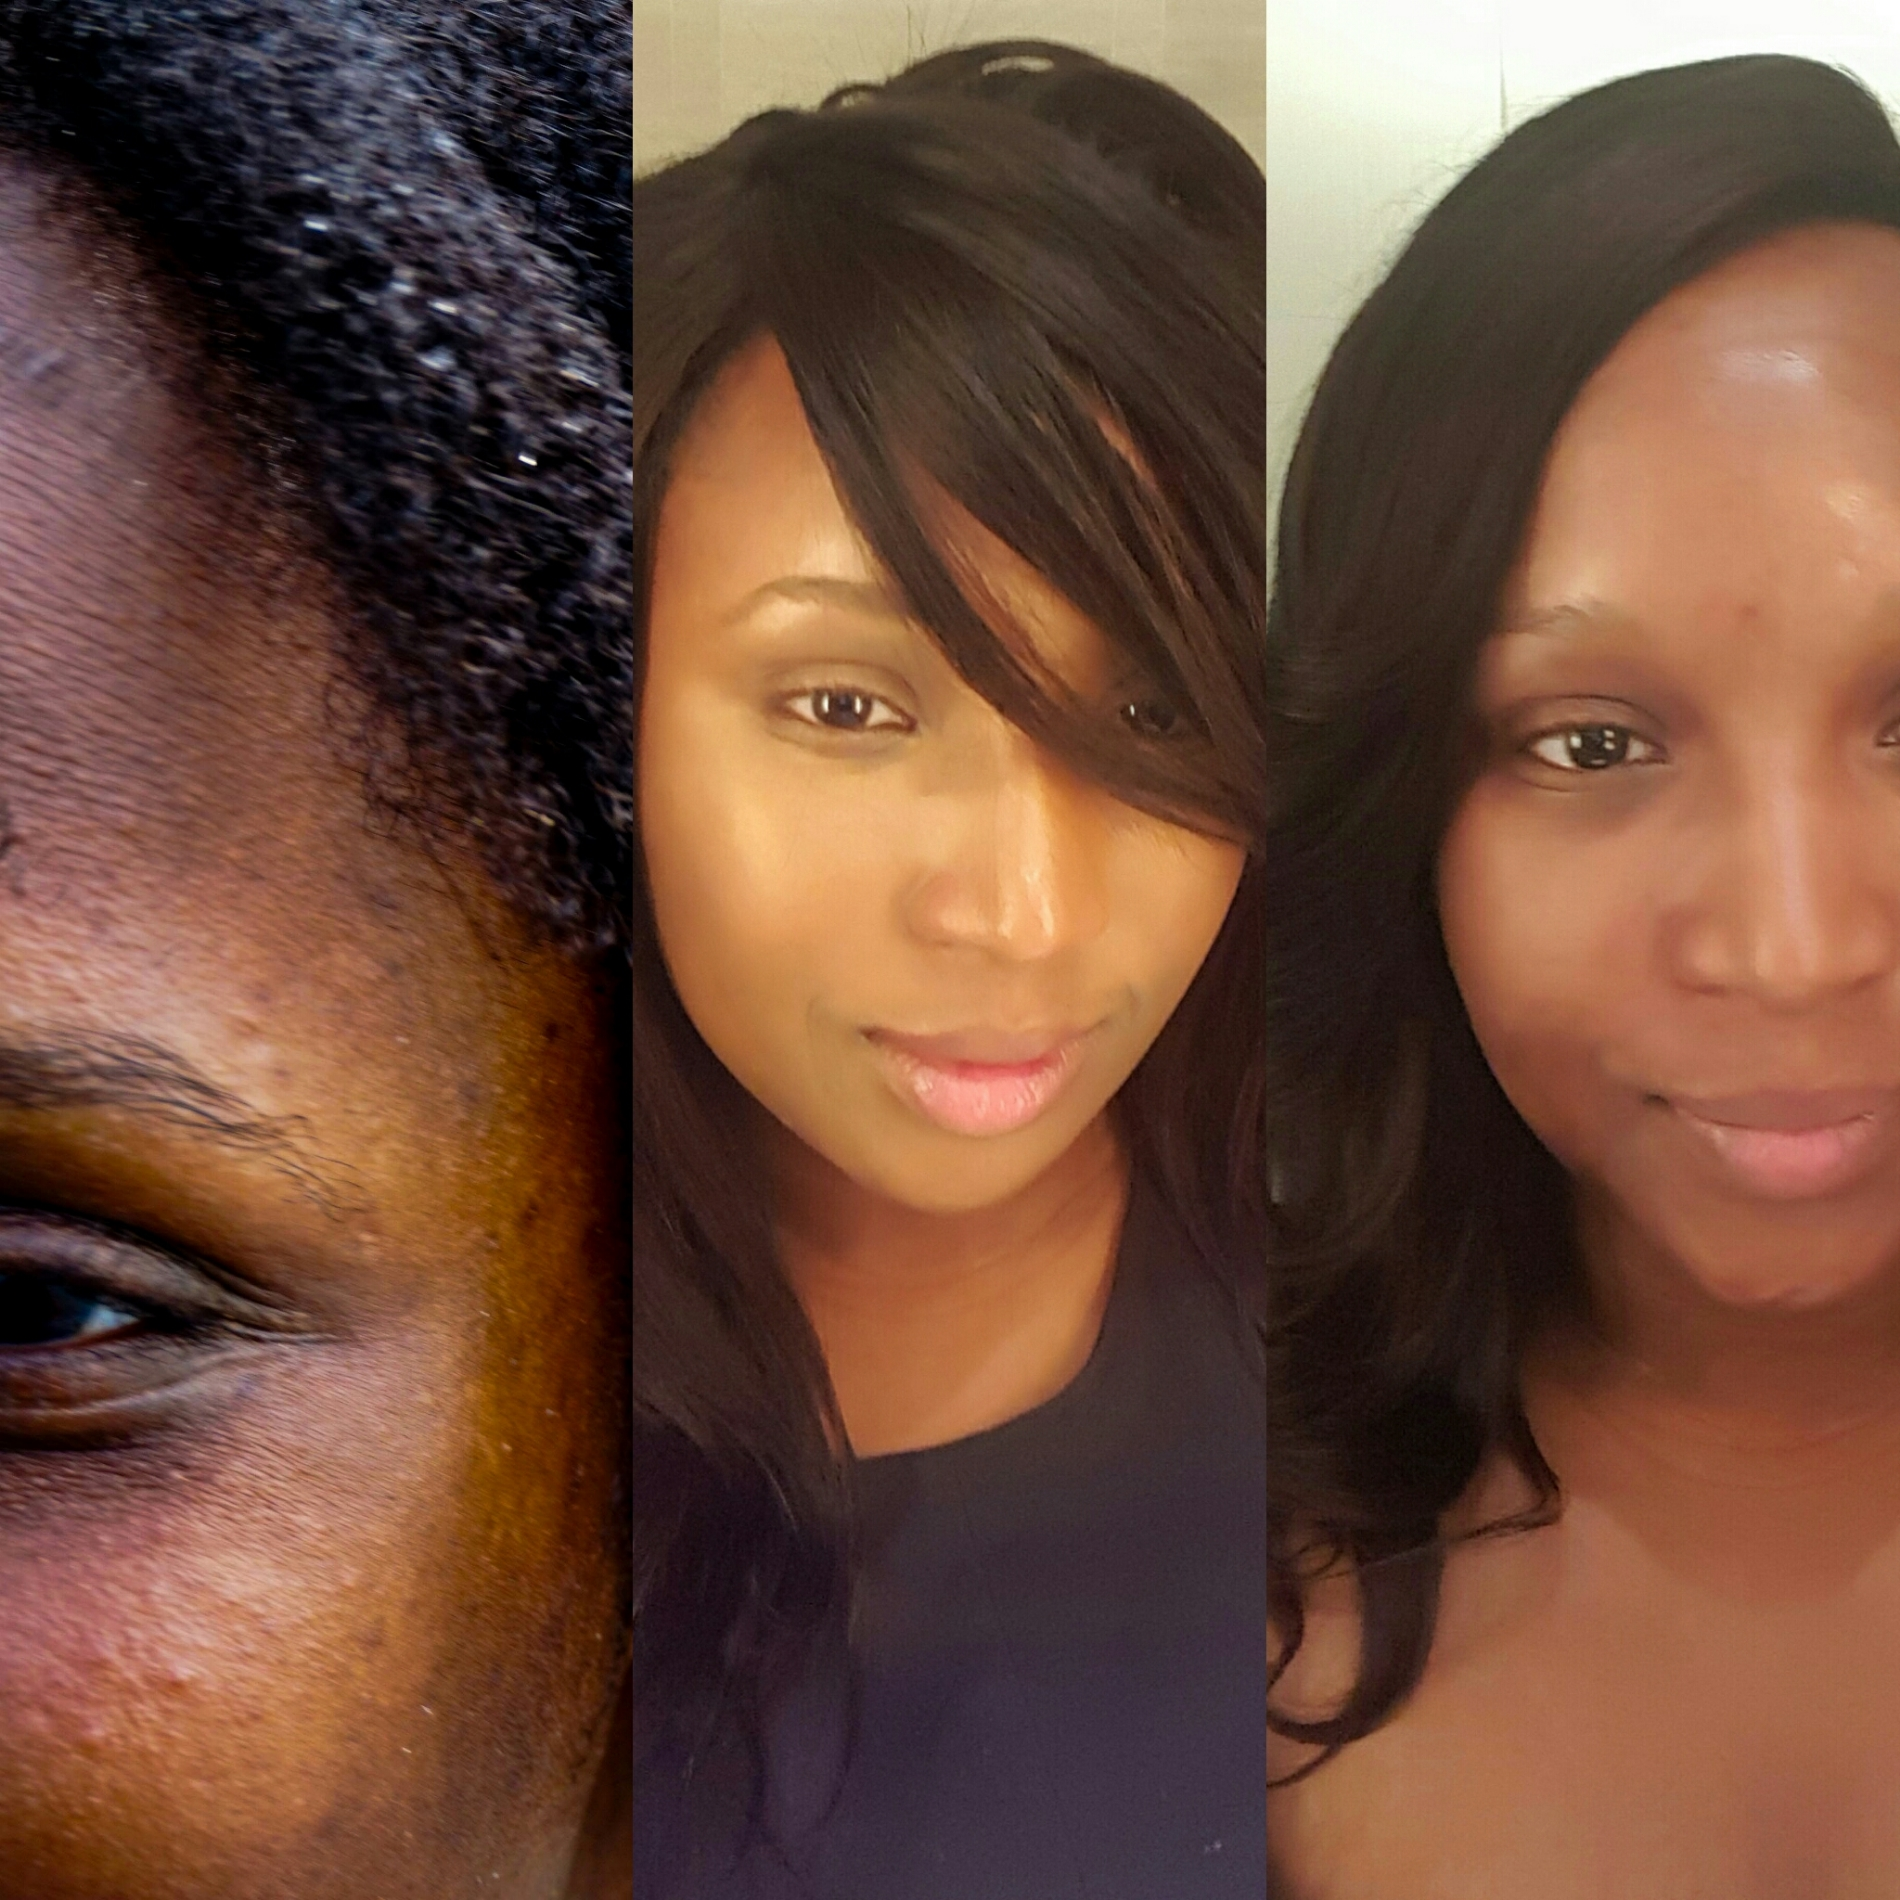 Before and after spot treatment usage.